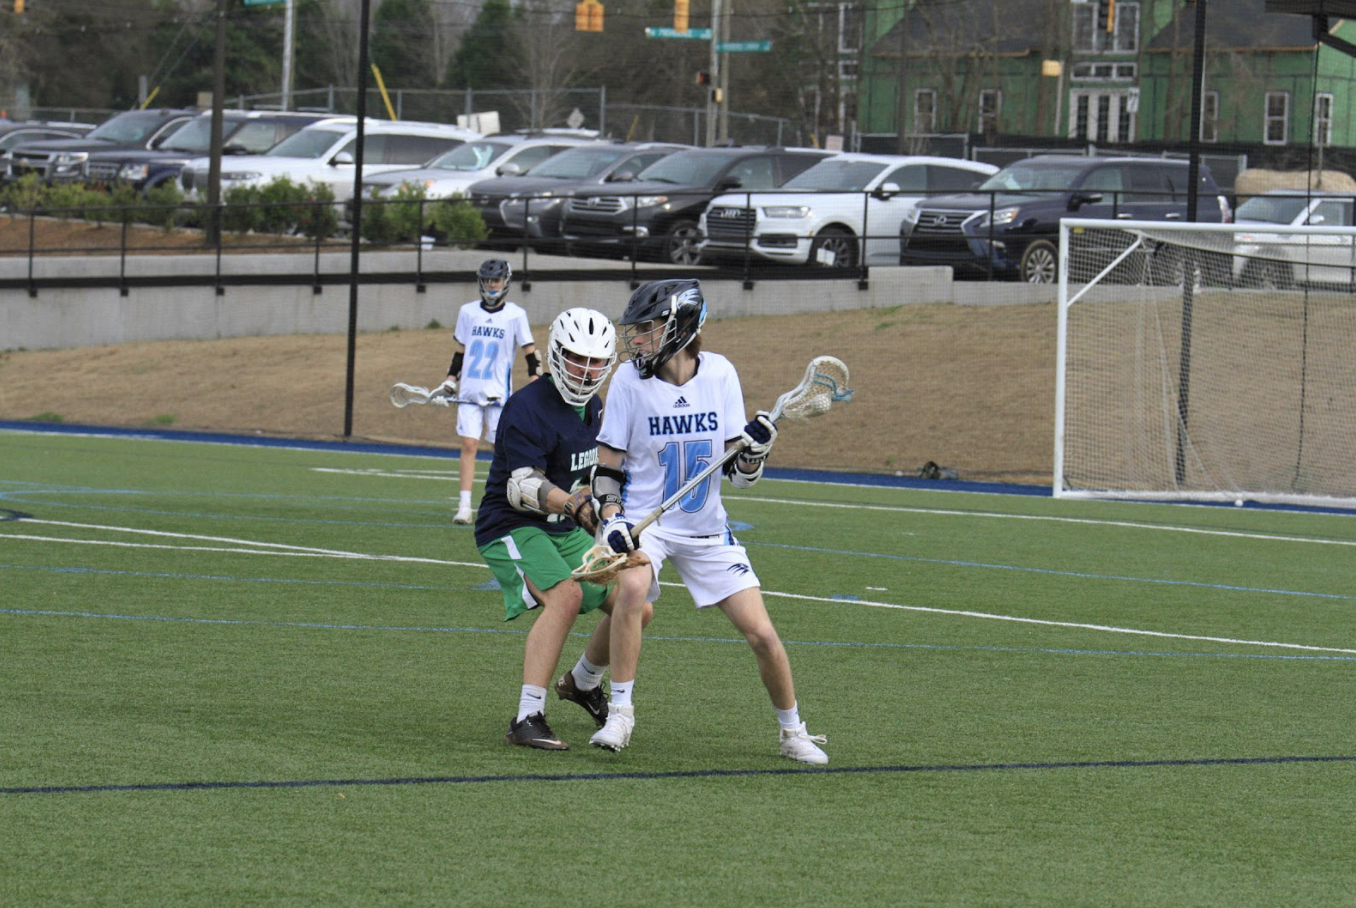 Wilkes Dolan '22 prepares to dust the Legion Collegiate defender that has foolishly challenged him to a 1 on 1. PC: St. Johns Photography, 2020.